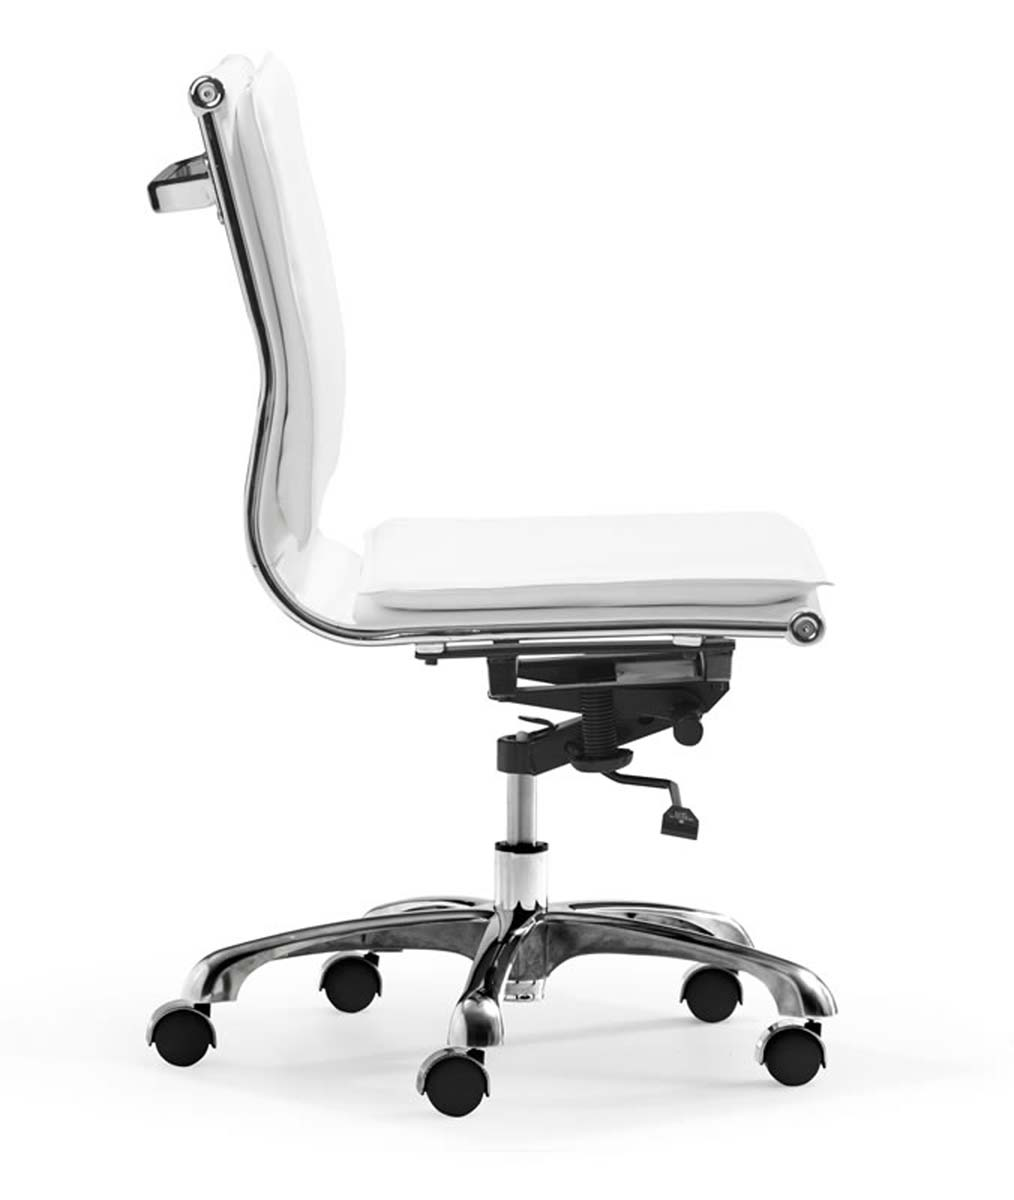 Zuo Modern Lider Plus Armless Office Chair - White  sc 1 st  Homelement.com & Zuo Modern Lider Plus Armless Office Chair - White ZM-215219 at ...